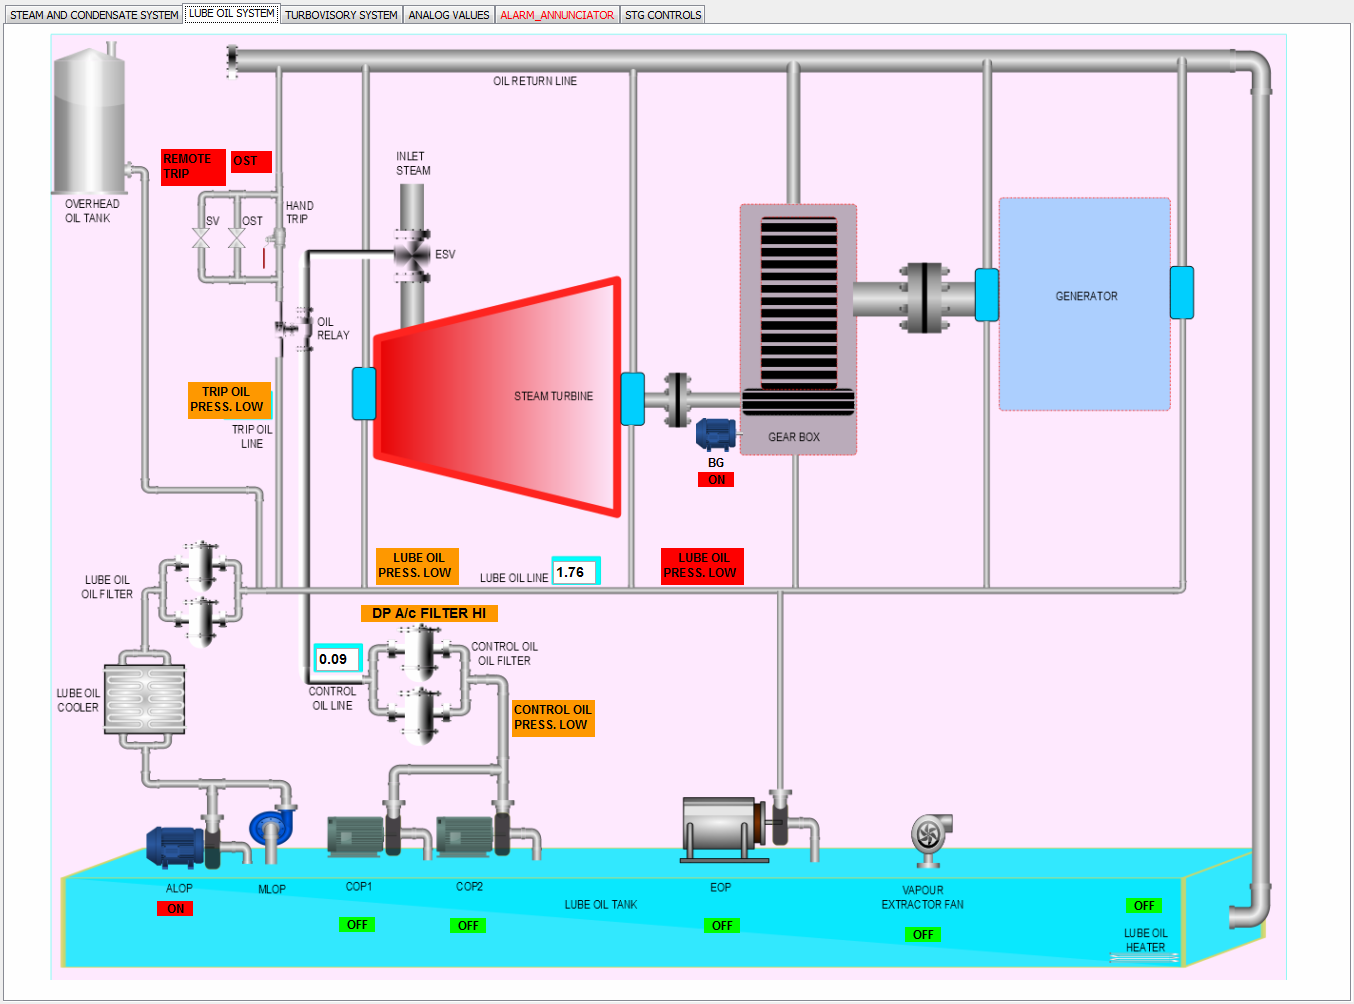 Aggregate Scada Hmi Screenshots Scada Hmi And Industrial